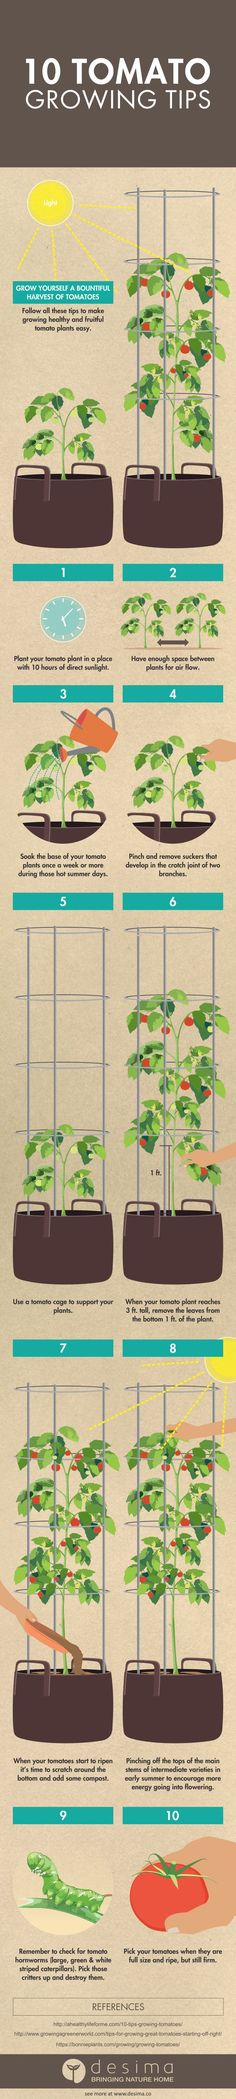 Follow all these tips to make growing healthy and fruitful tomato plants easy. 1. Plant your tomato plant in a place with 10 hours of direct sunlight. 2. Have enough space between plants for air flow. 3. Soak the base of your tomato plants once a week or more during those hot summer days. 4. Pinch and remove suckers that develop in the crotch joint of two branches. 5. Use a tomato cage to support your plants. 6. When your tomato plant reaches 3 ft. tall, remove the...